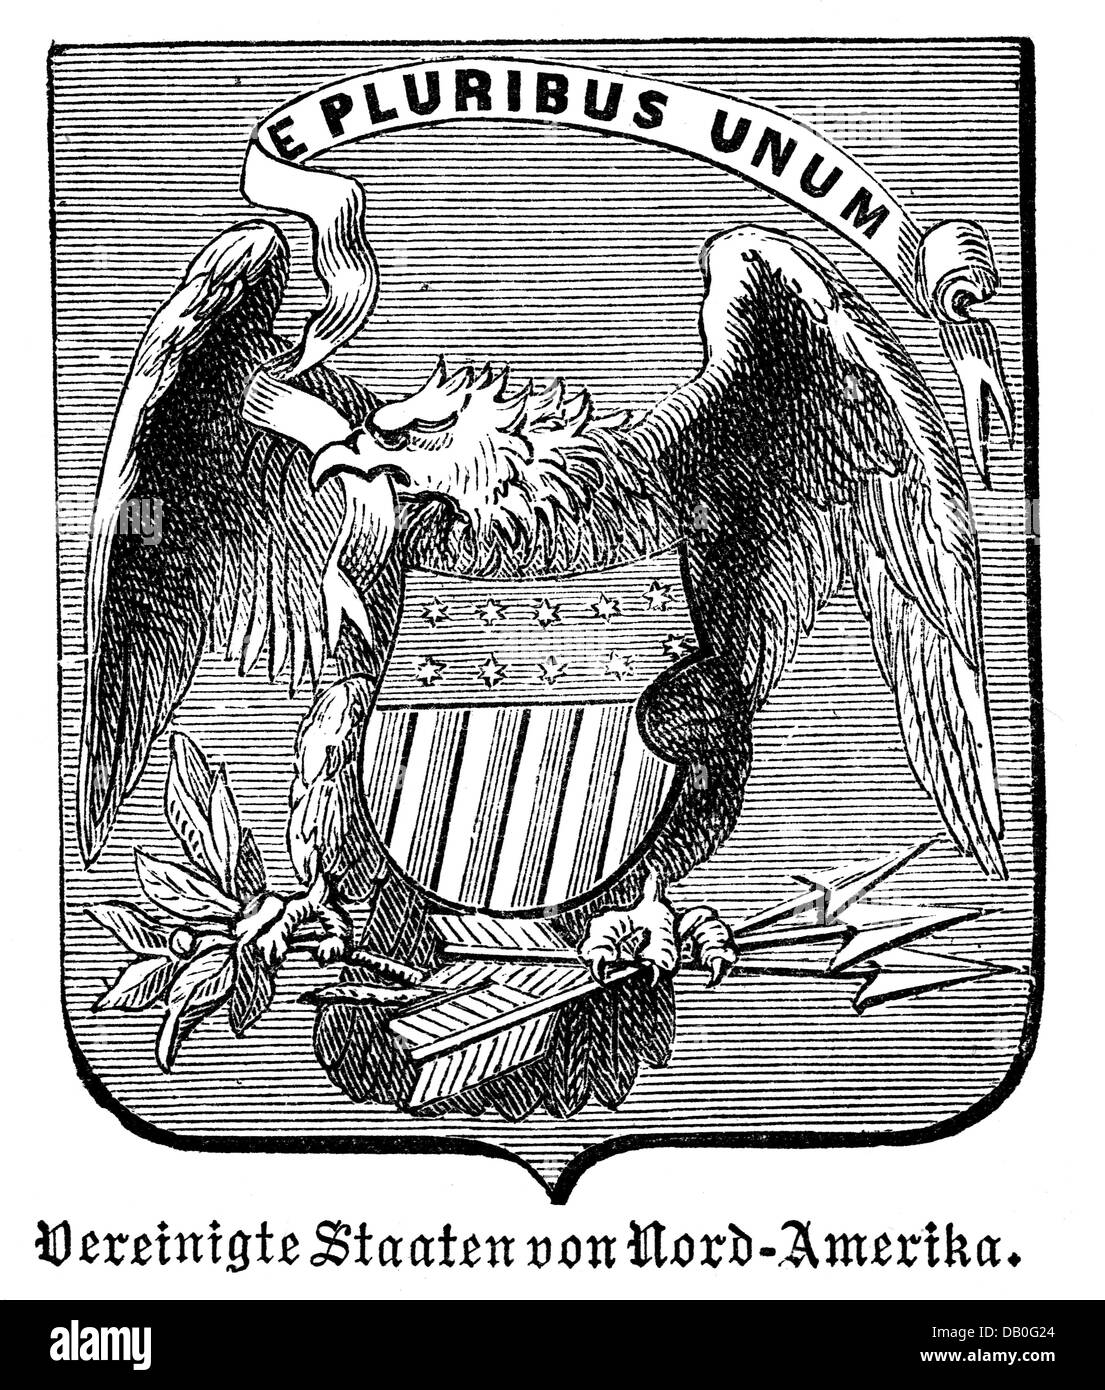 heraldry, coat of arms, USA, state coat of arms of the